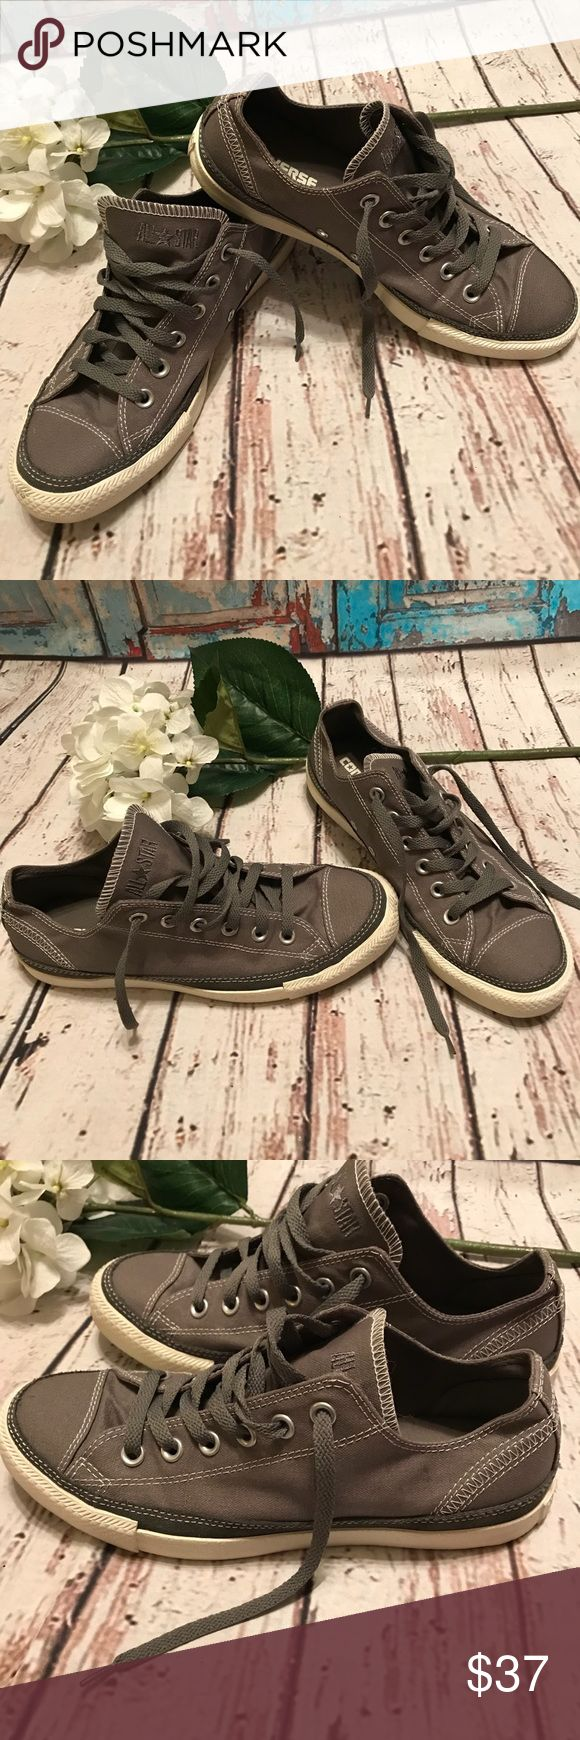 Converse Chucks Canvas & Suede Grey Allstars Converse Chucks Canvas & Suede Grey Allstars New without tags Size 9 Grey canvas with suede trim White decorative stitching White Raised Allstar lettering on the heel Gorgeous Chucks💕 Converse Shoes Athletic Shoes